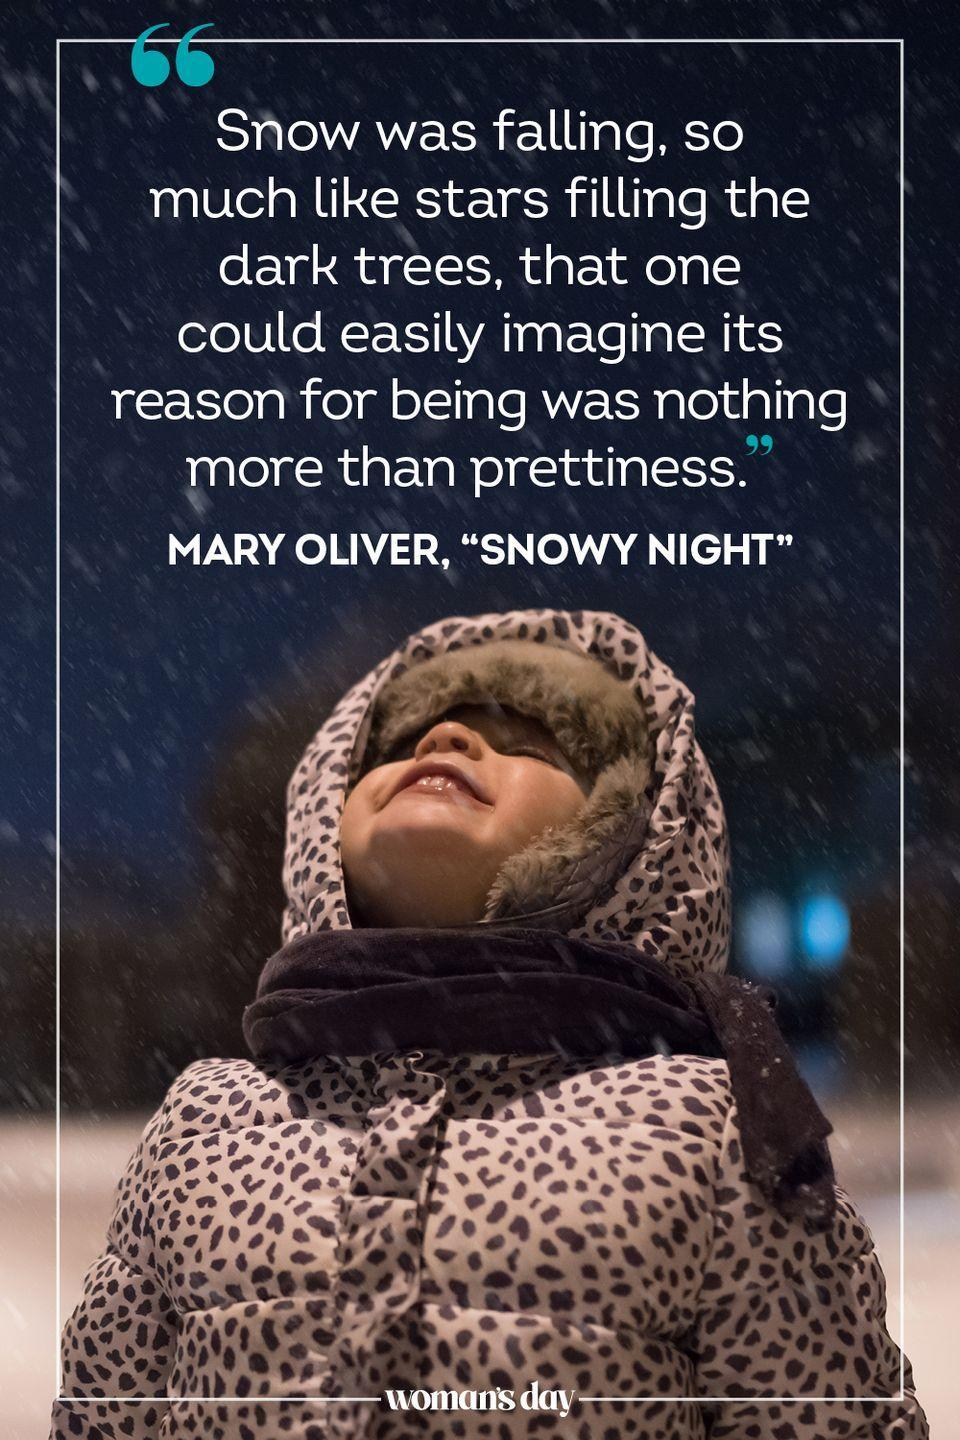 "<p>""<a href=""http://famouspoetsandpoems.com/poets/mary_oliver/poems/15859"" rel=""nofollow noopener"" target=""_blank"" data-ylk=""slk:Snow was falling"" class=""link rapid-noclick-resp"">Snow was falling</a>, so much like stars filling the dark trees, that one could easily imagine its reason for being was nothing more than prettiness."" — Mary Oliver, ""Snowy Night""</p>"